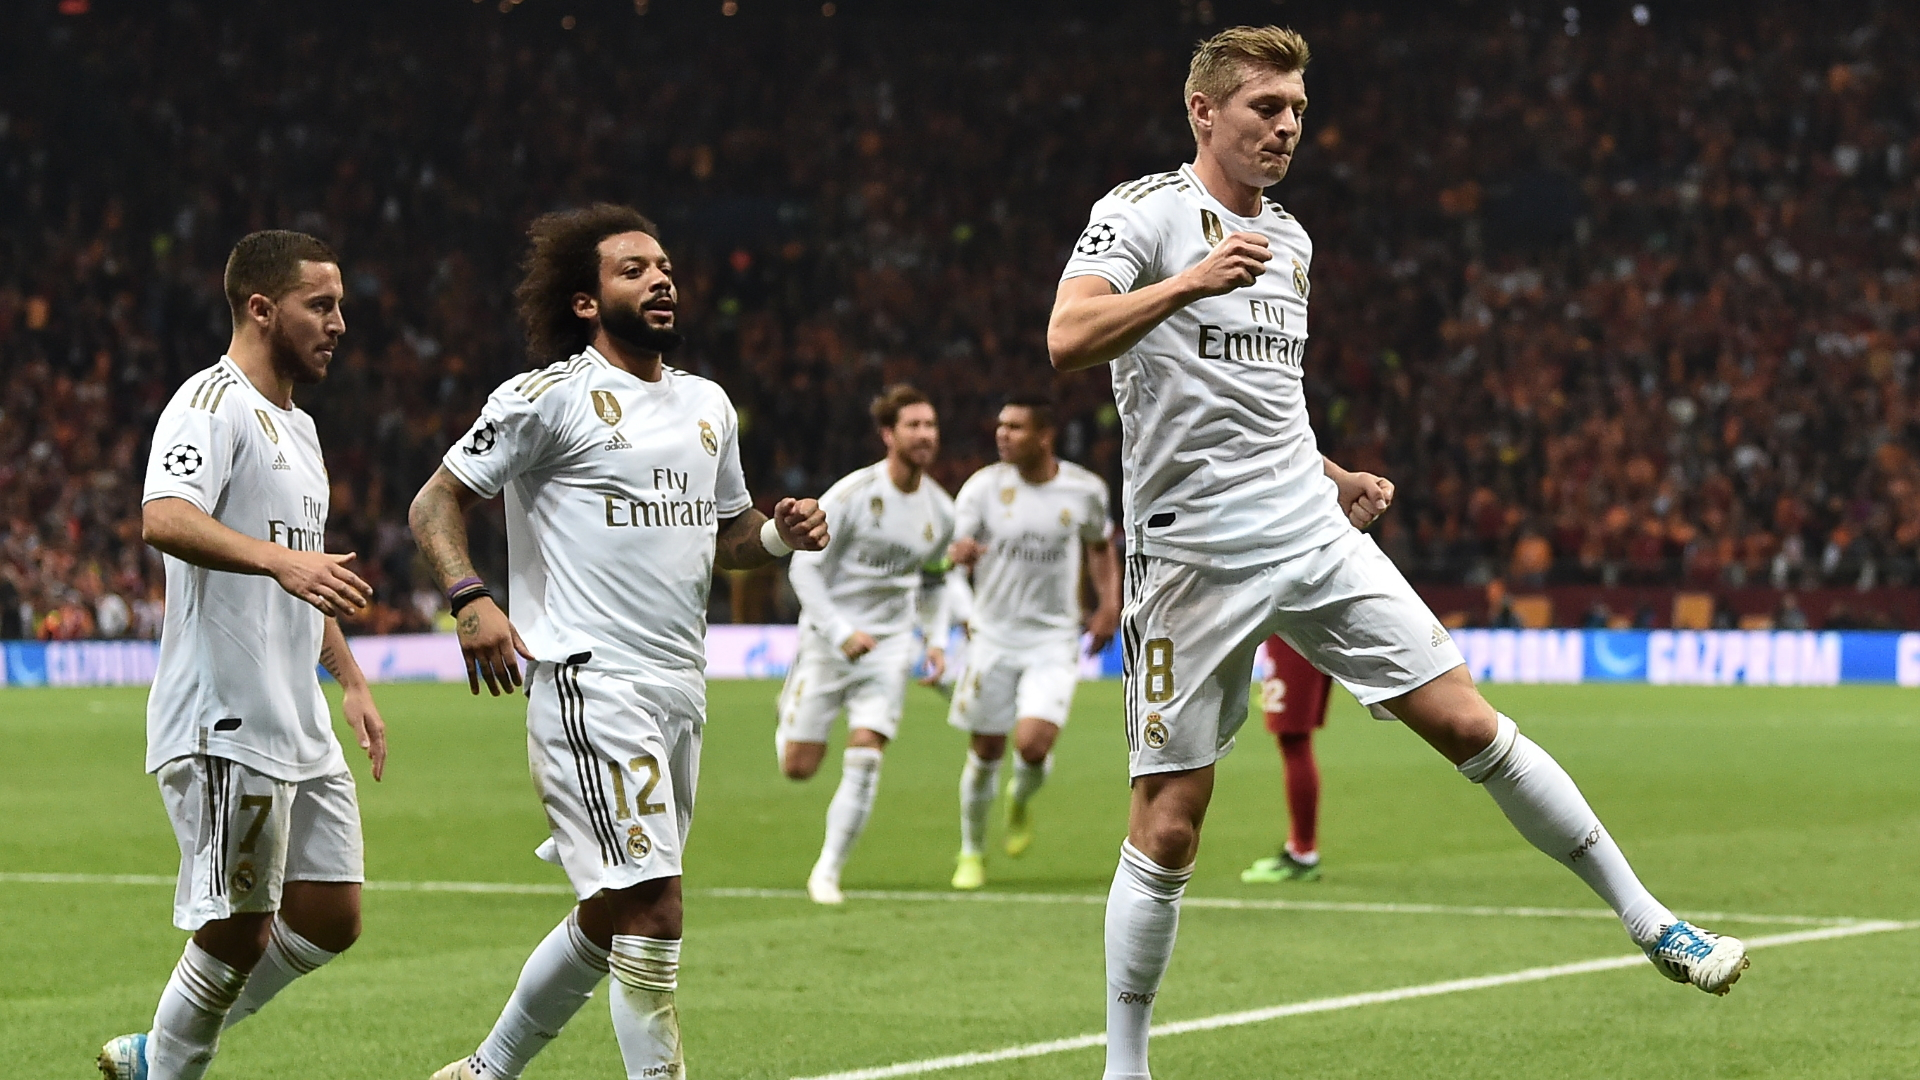 Toni Kroos celebrates vs Galatasaray